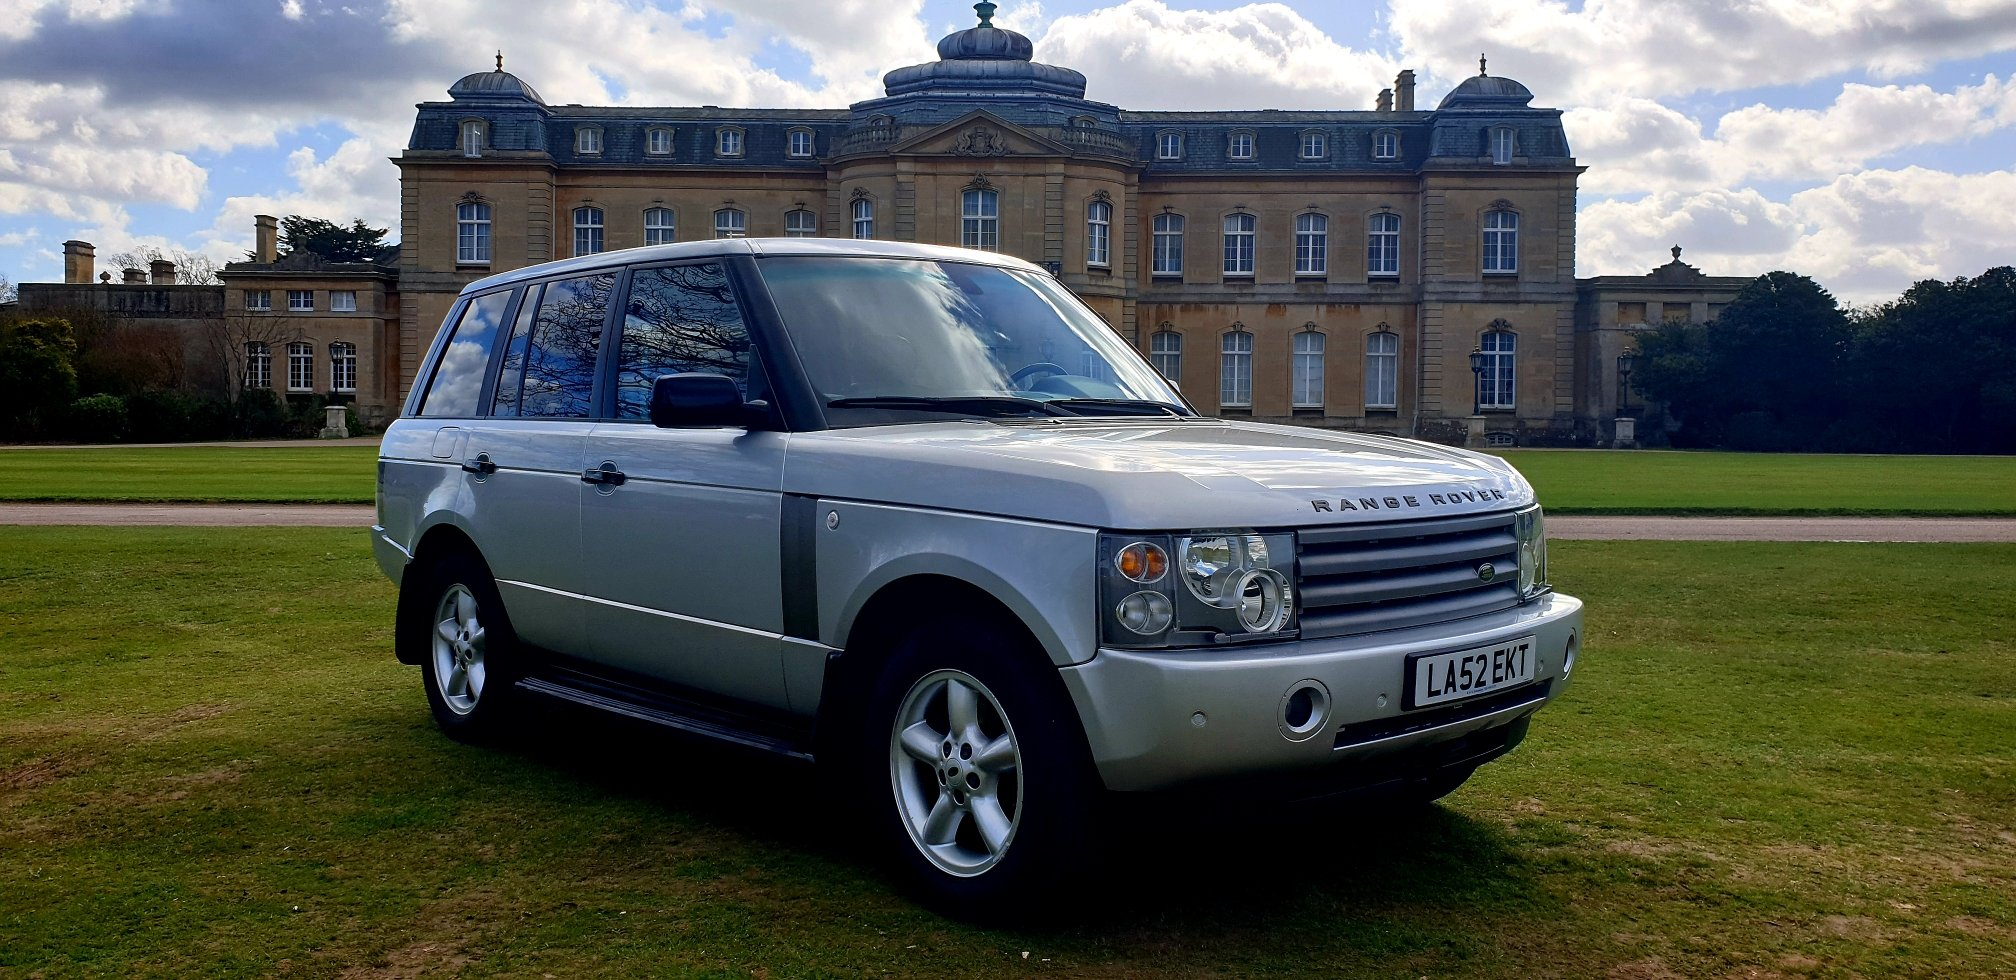 2002 LHD Range Rover 3.0 TD6 4X4 Auto Vogue,LEFT HAND DRIVE For Sale (picture 1 of 6)